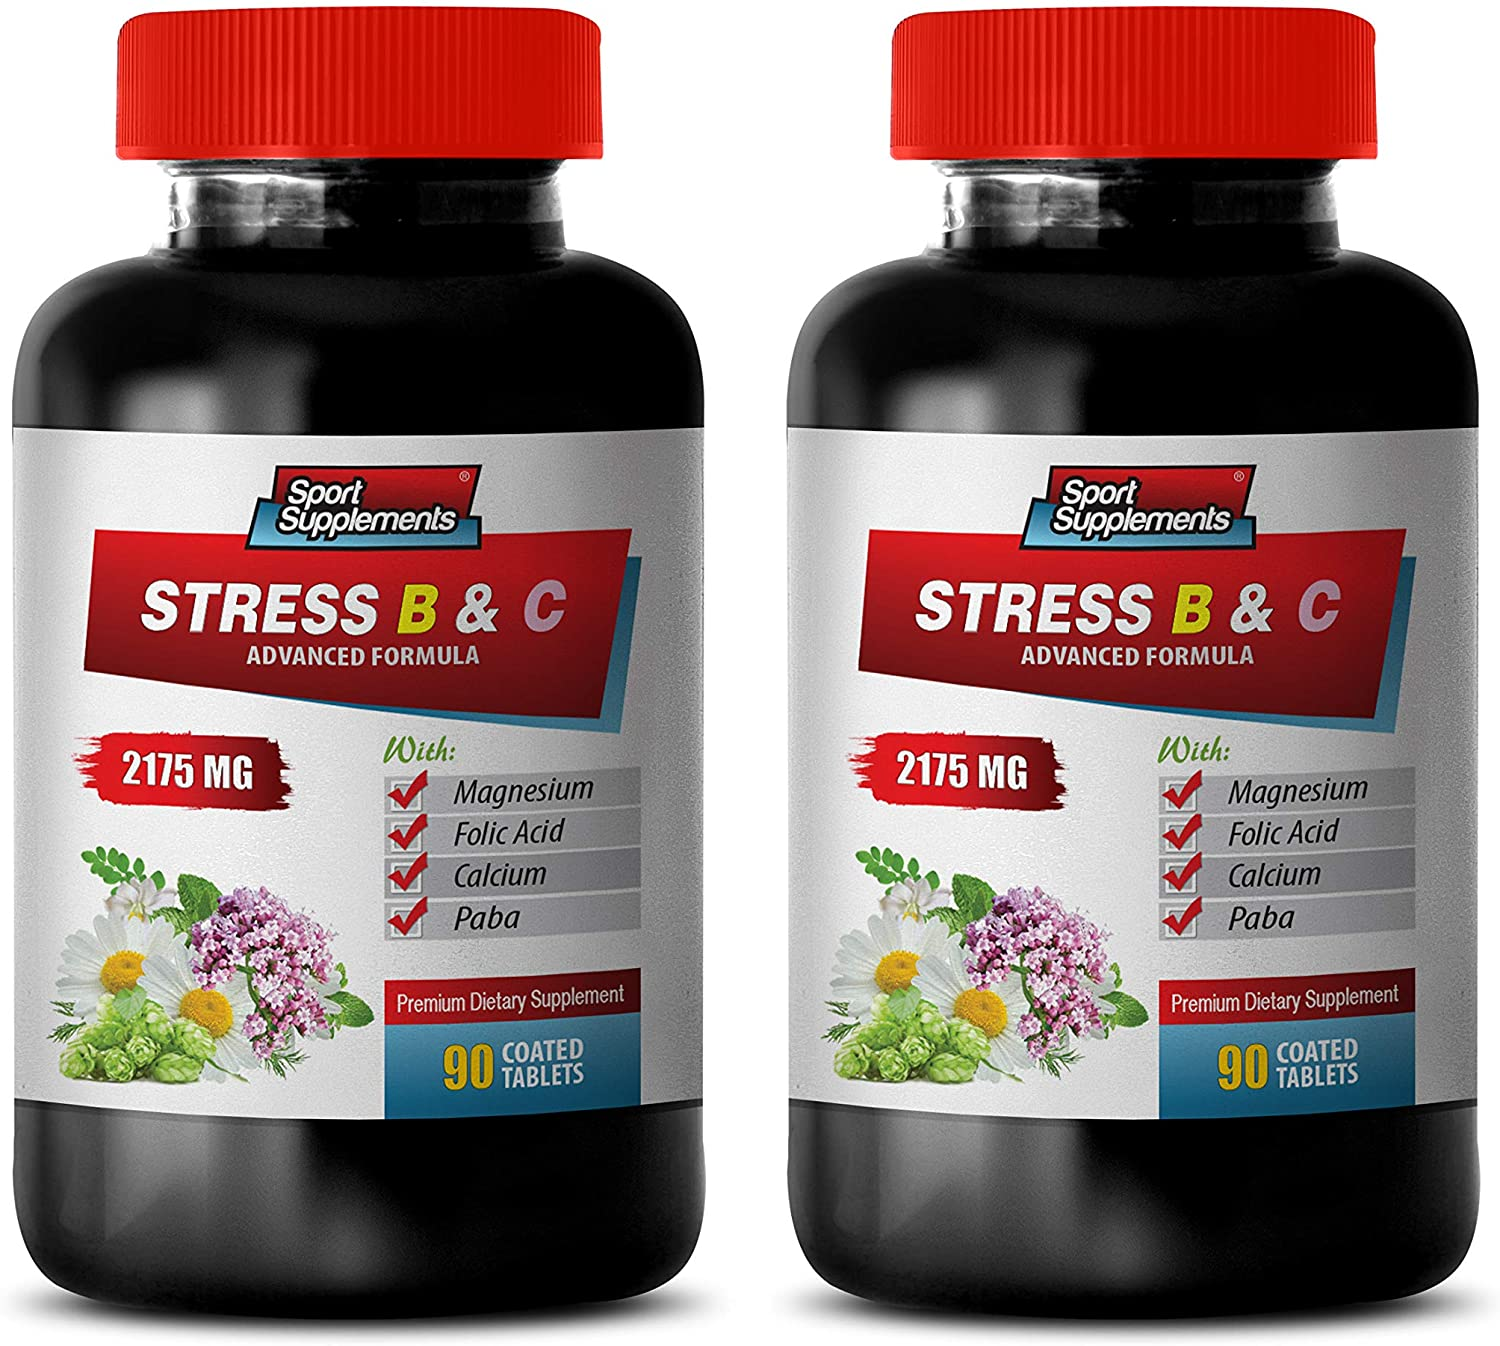 Vitamin d Anxiety - Stress Relief B and C Complex - Anxiety Relief - Sleep Quality Boost - Natural Solution - Passion Flower Capsules Organic - 2 Bottles (180 Tabs)